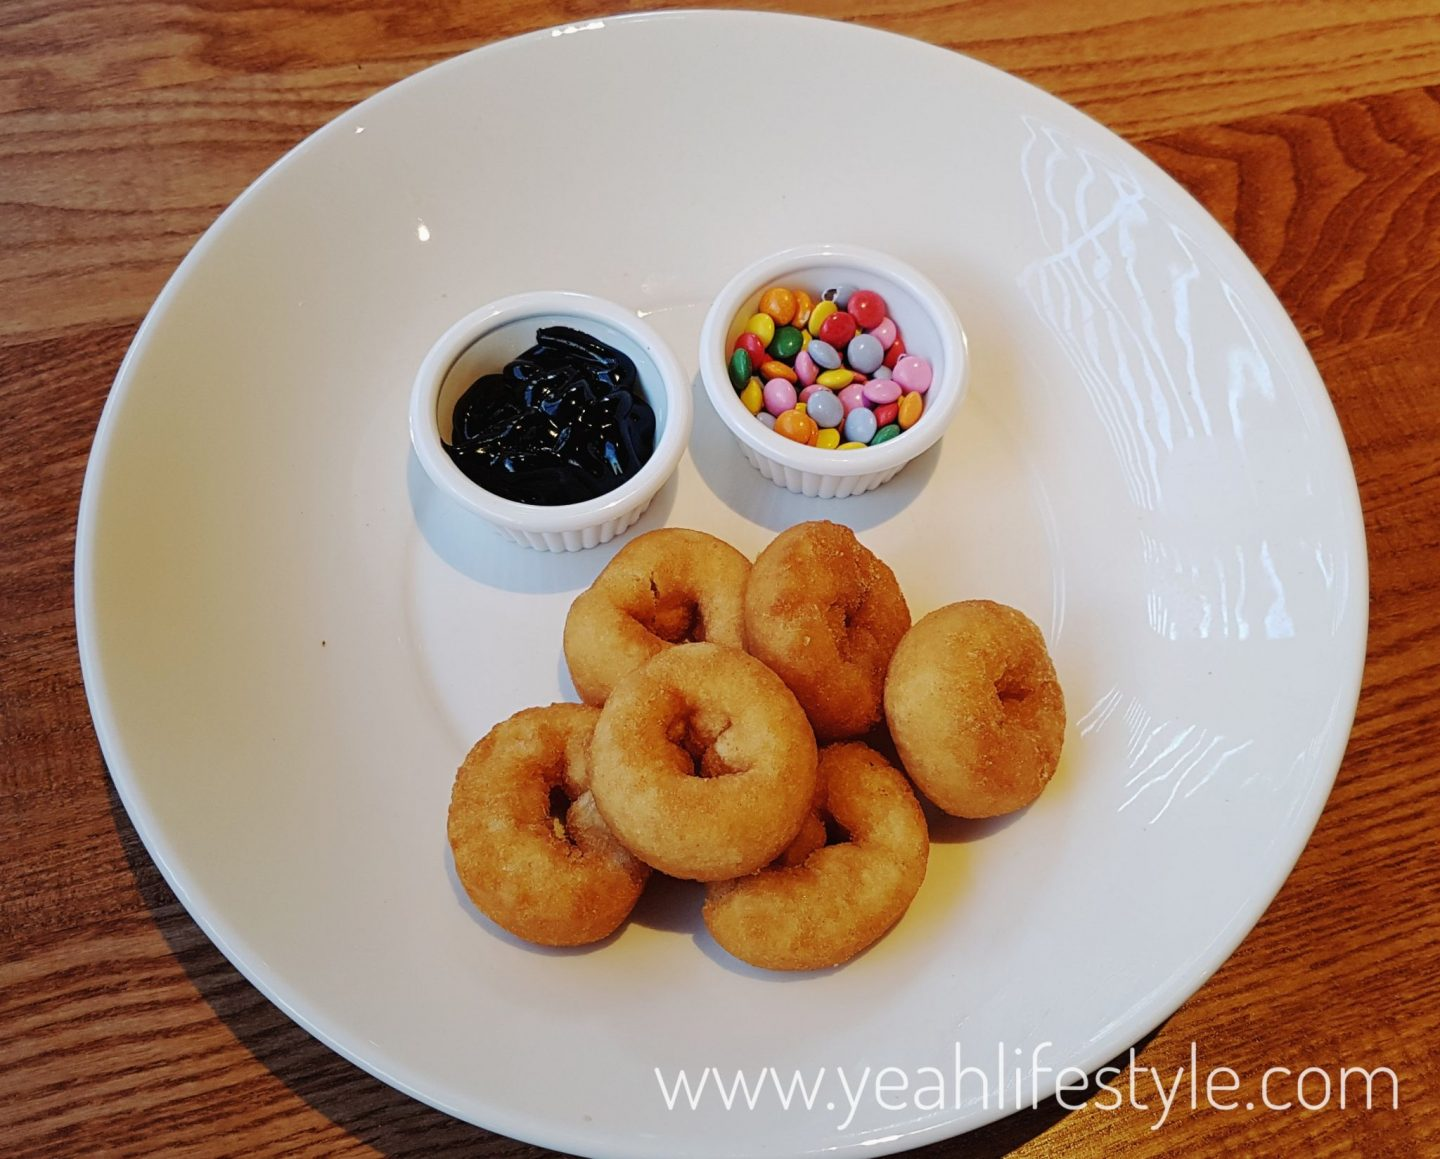 Beefeater-Springwood-Park-Macclesfield-Cheshire-Food-Blogger-Yeah-Lifestyle-Donuts